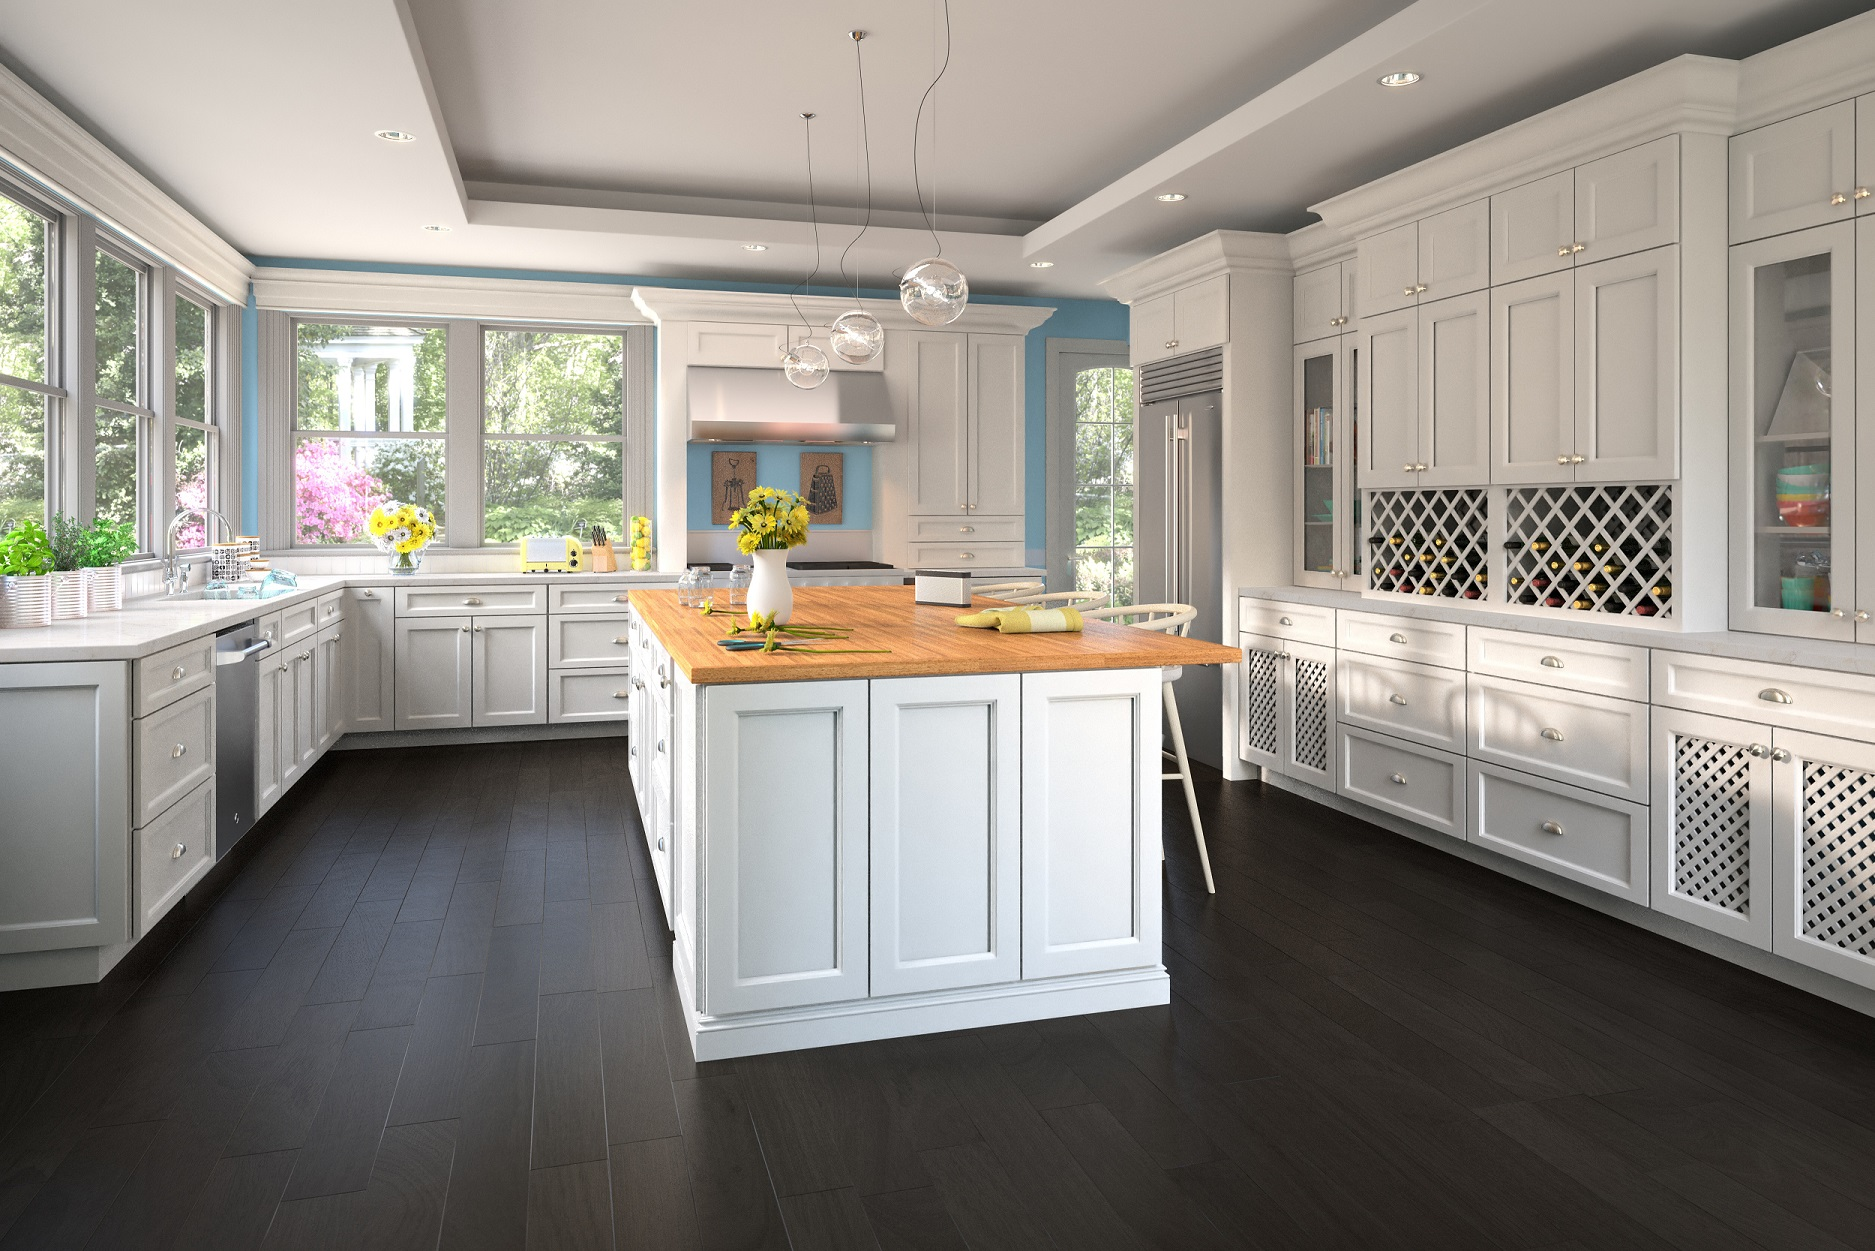 Interior Kitchen Cabinet Rta newport white pre assembled kitchen cabinets the rta store cabinets